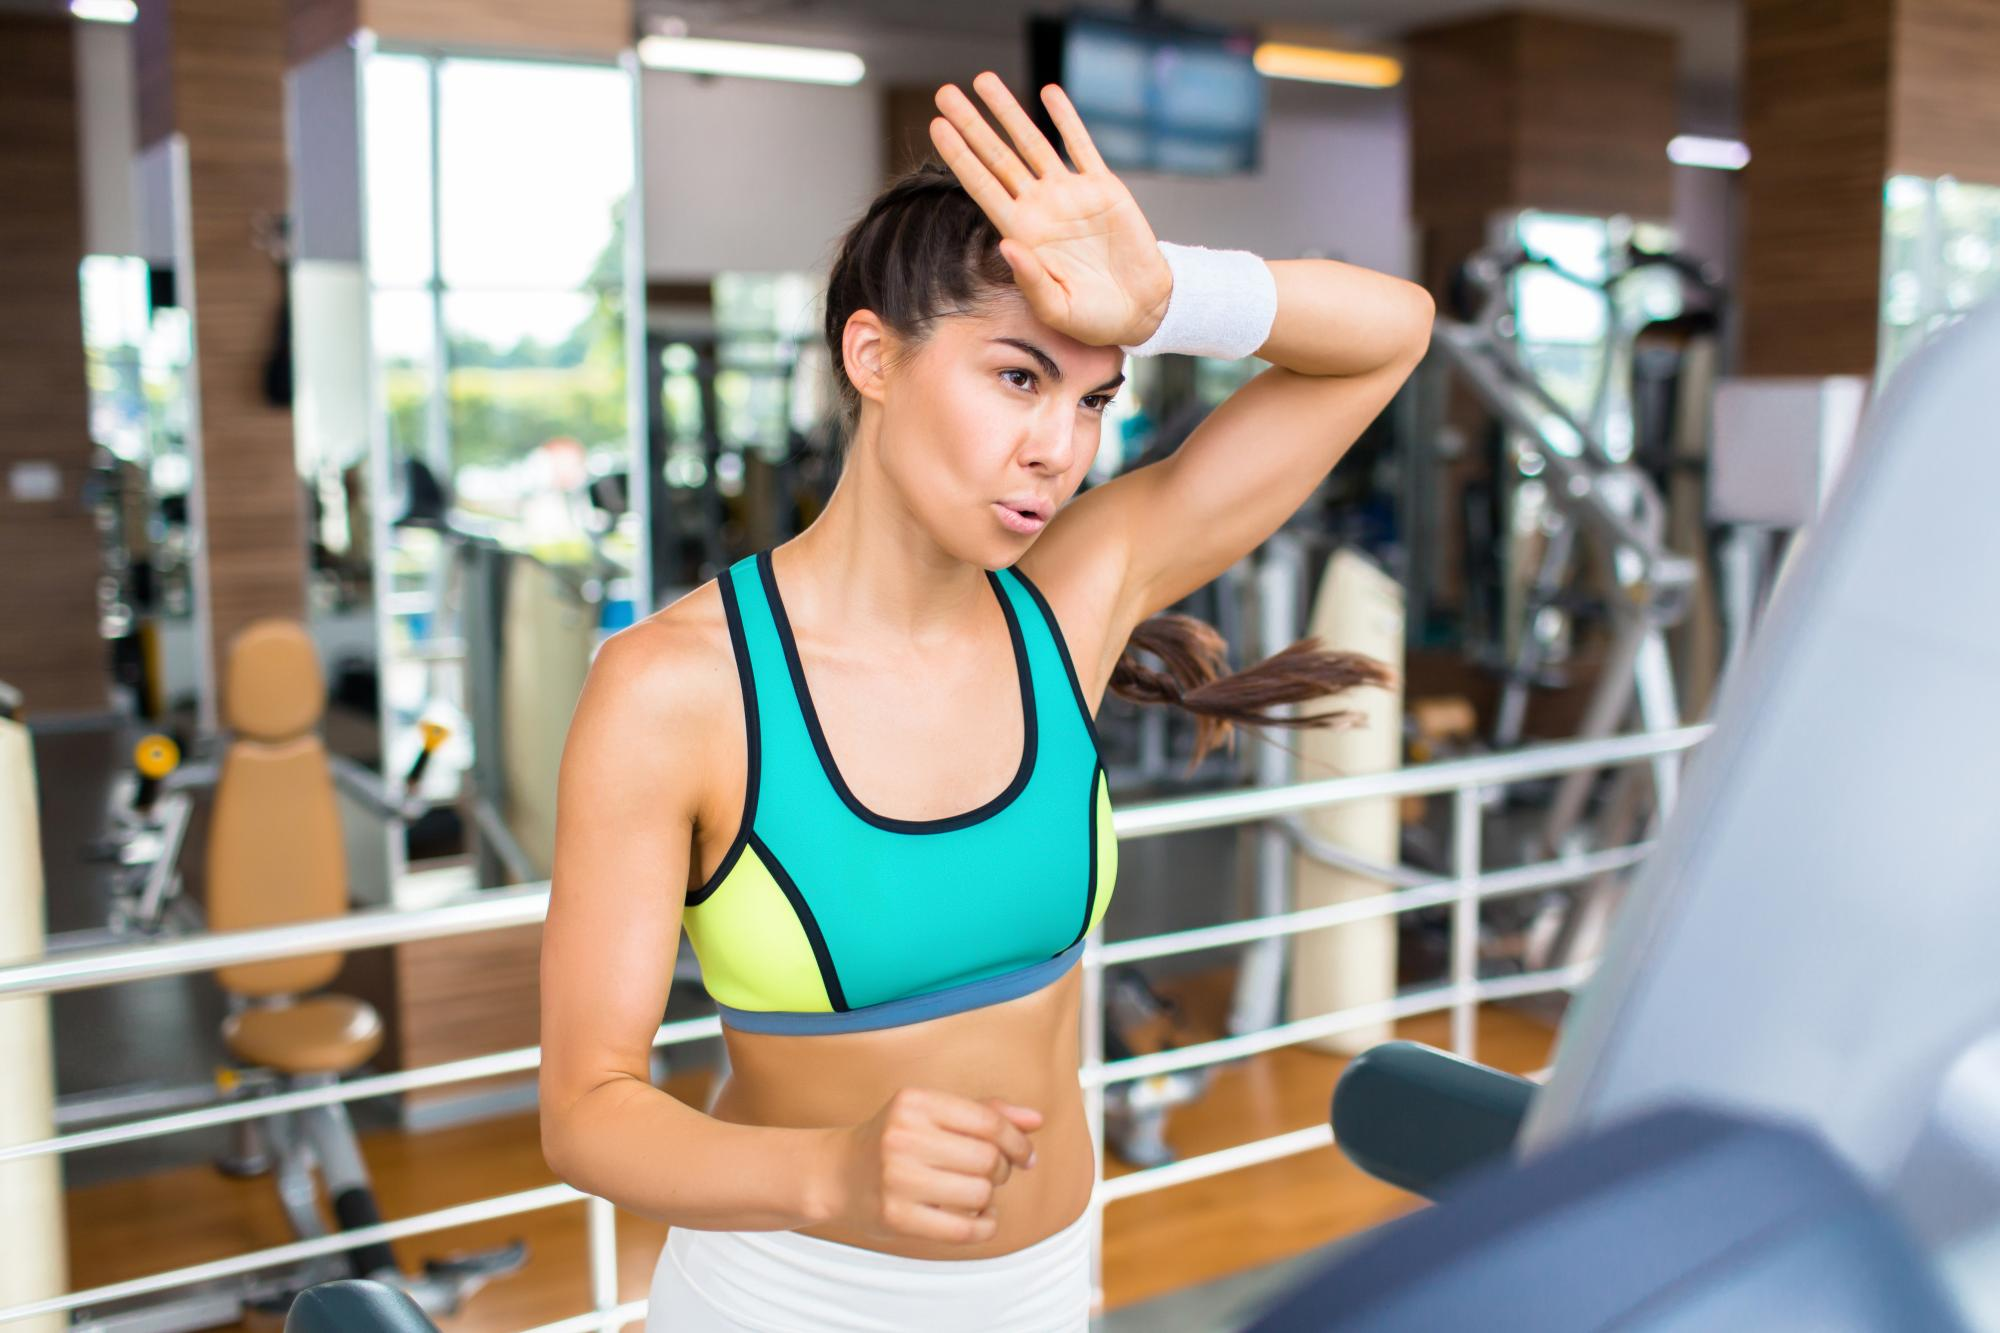 7 Signs to Tell If You're Overtraining - Precor (US)